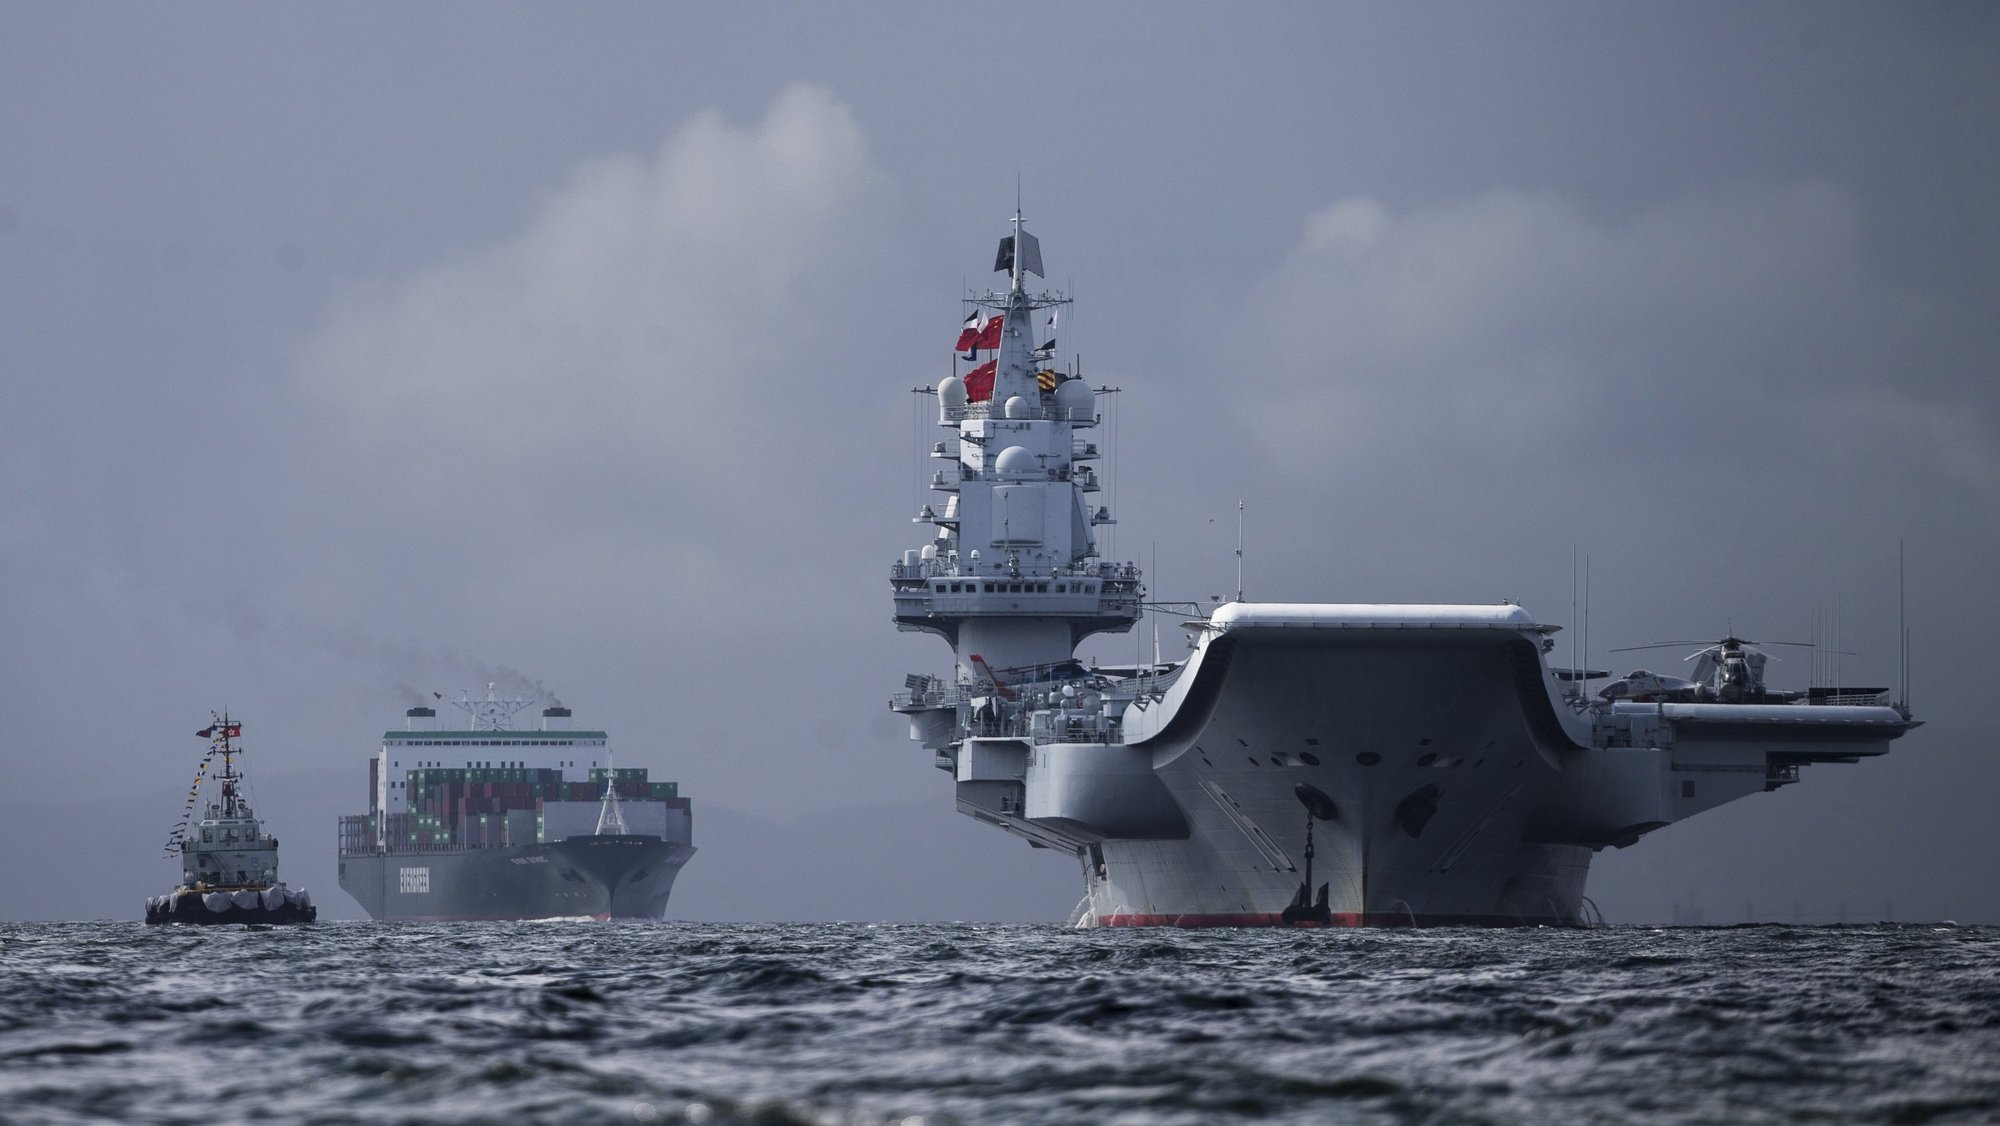 epaselect epa06071725 The Liaoning (R), the first aircraft carrier commissioned into China's military, arrives in Hong Kong, China, 07 July 2017. The Liaoning, a refitted former Soviet carrier that Beijing bought from a Ukraine shipyard in 1998, is making a 5-days port call to Hong Kong as part of the 20th anniversary celebrations of Hong Kong's return to Chinese sovereignty.  EPA/JEROME FAVRE